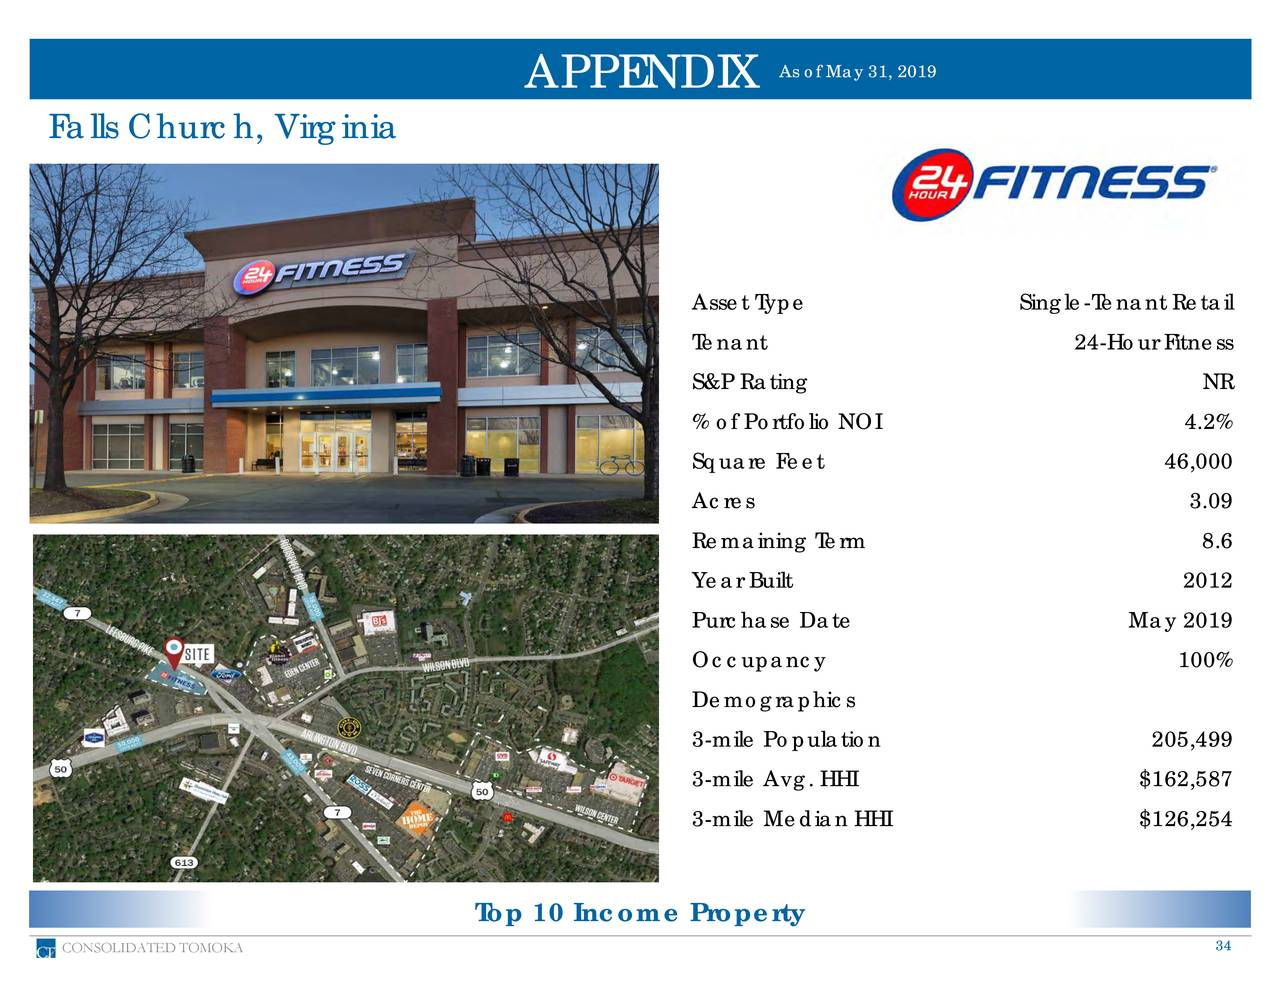 APPENDIX Falls Church, Virginia Asset Type Single-Tenant Retail Tenant 24-Hour Fitness S&P Rating NR % of Portfolio NOI 4.2% Square Feet 46,000 Acres 3.09 Remaining Term 8.6 Year Built 2012 Purchase Date May 2019 Occupancy 100% Demographics 3-mile Population 205,499 3-mile Avg. HHI $162,587 3-mile Median HHI $126,254 Top 10 Income Property CONSOLIDATED TOMOKA 34